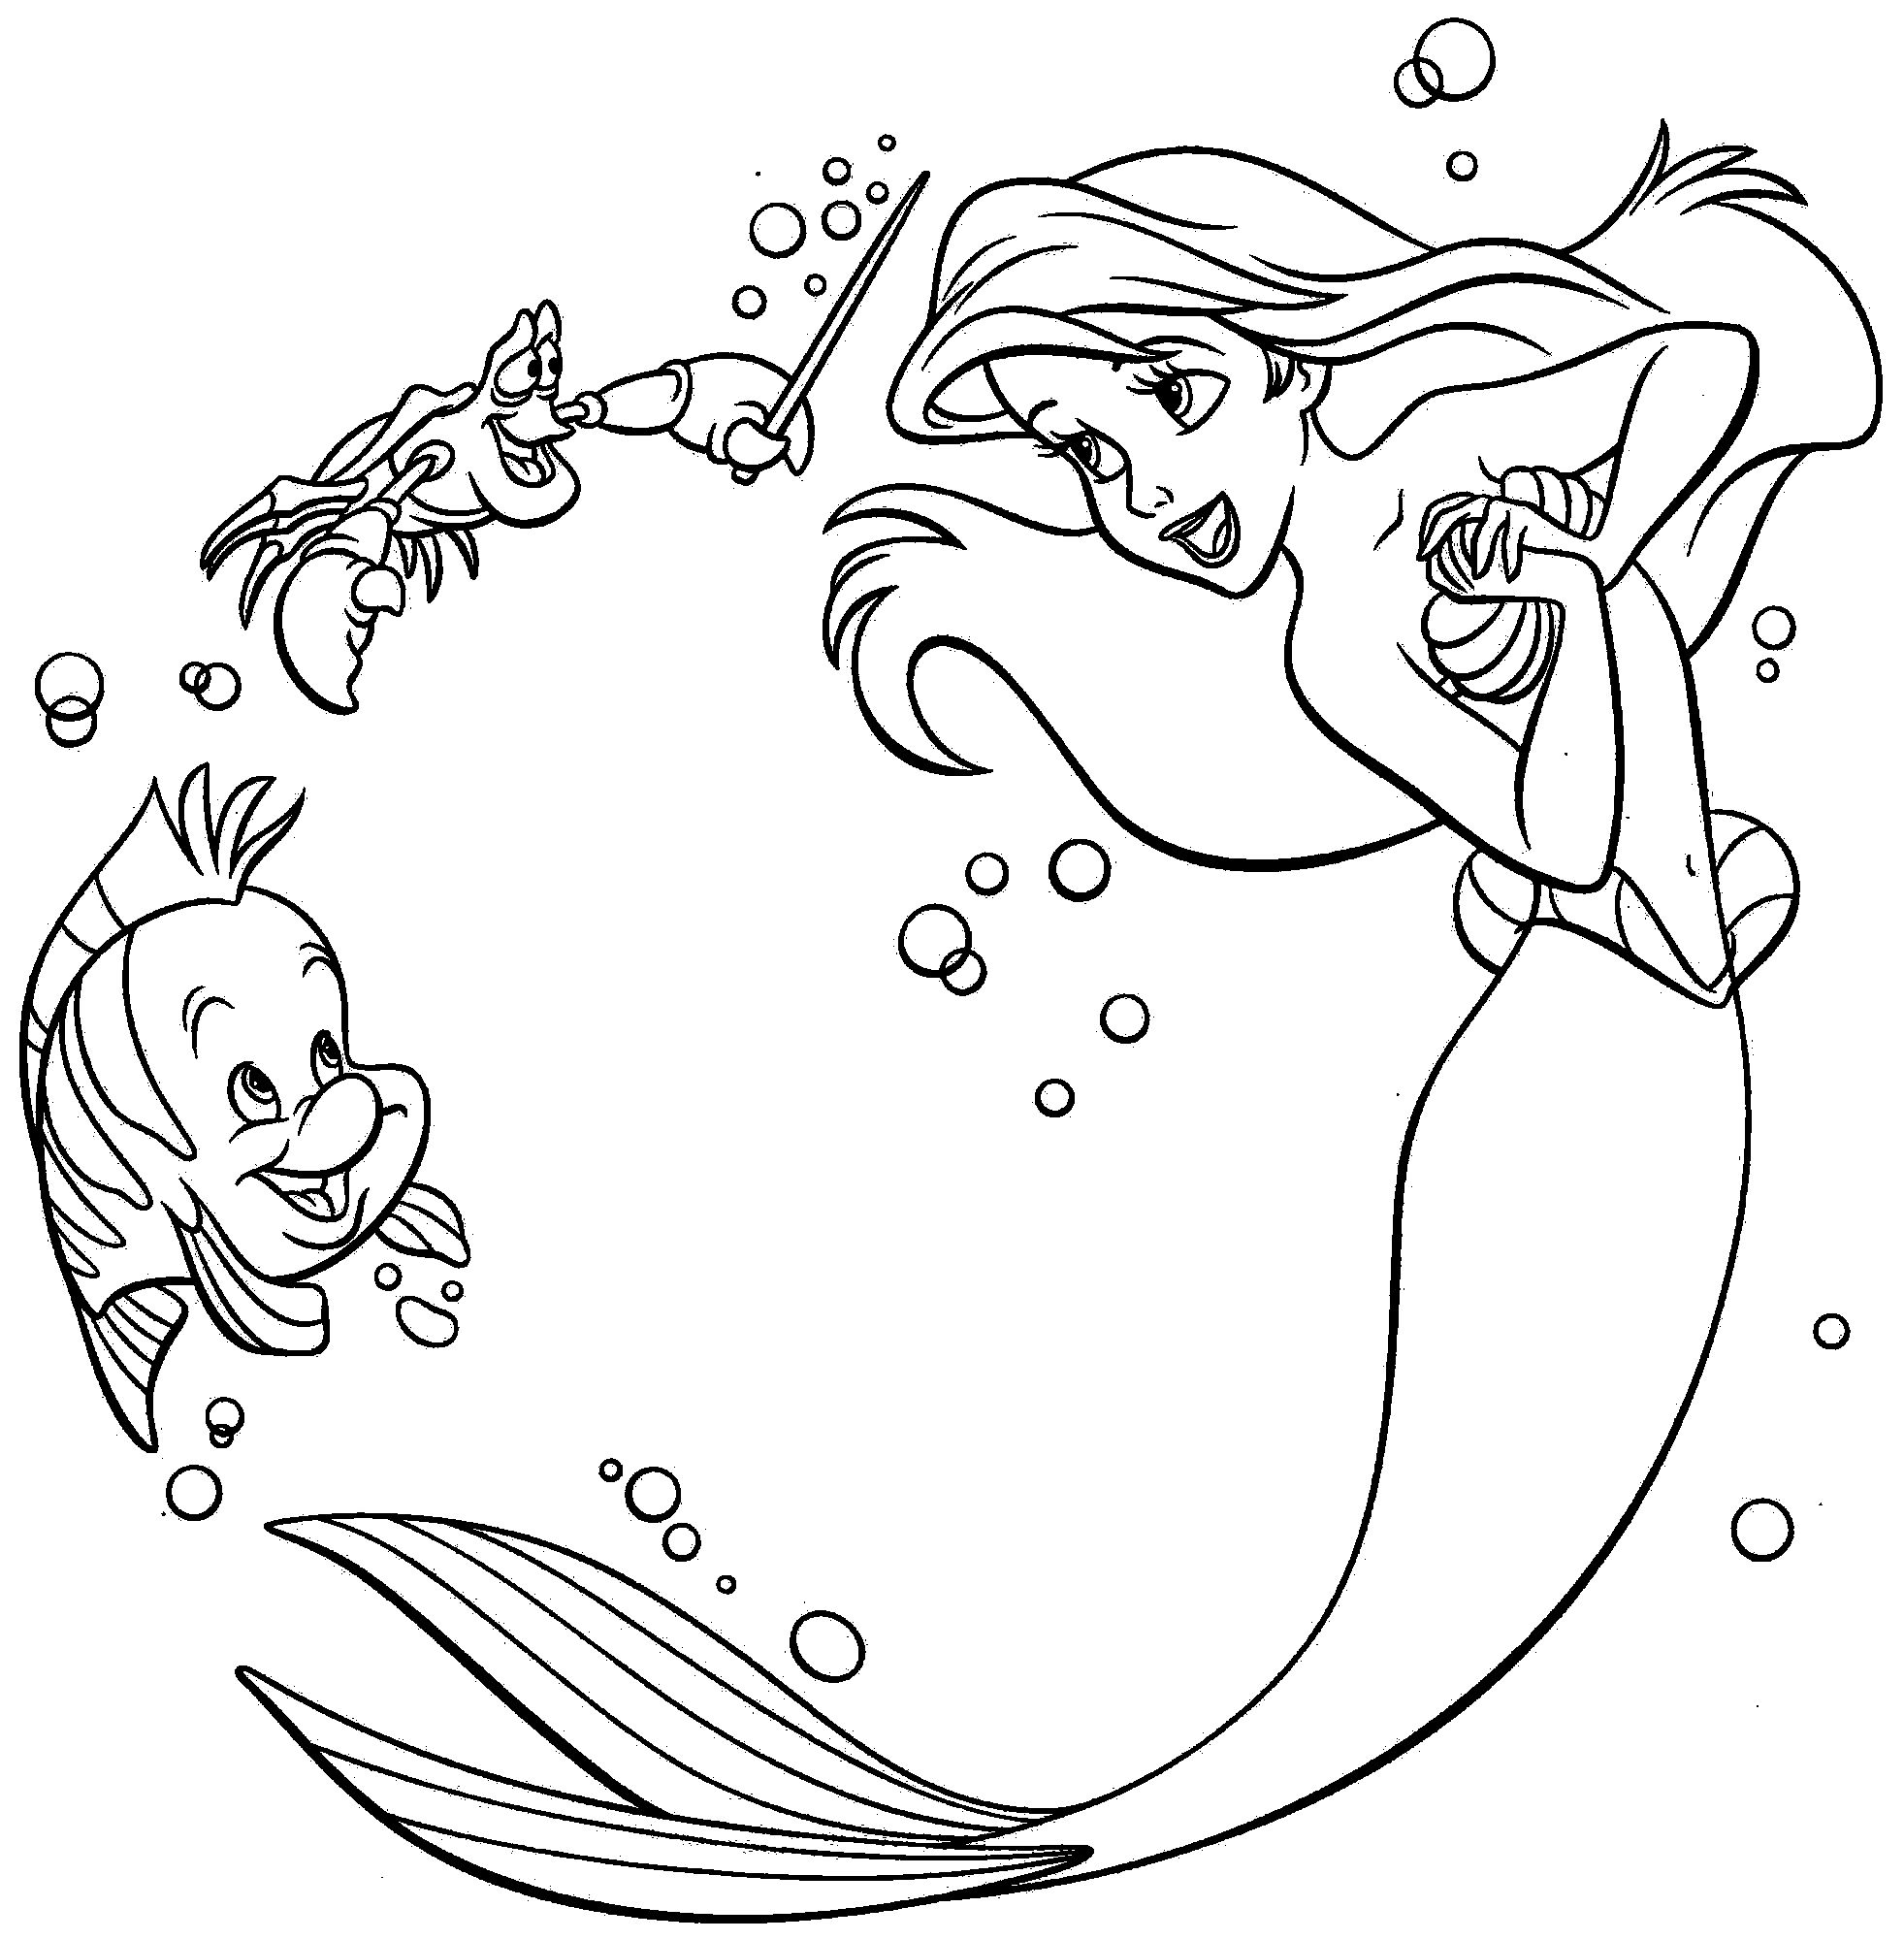 Free Coloring Pages Download Ariel Playing With Sebastian Little Mermaid Of Mermiad